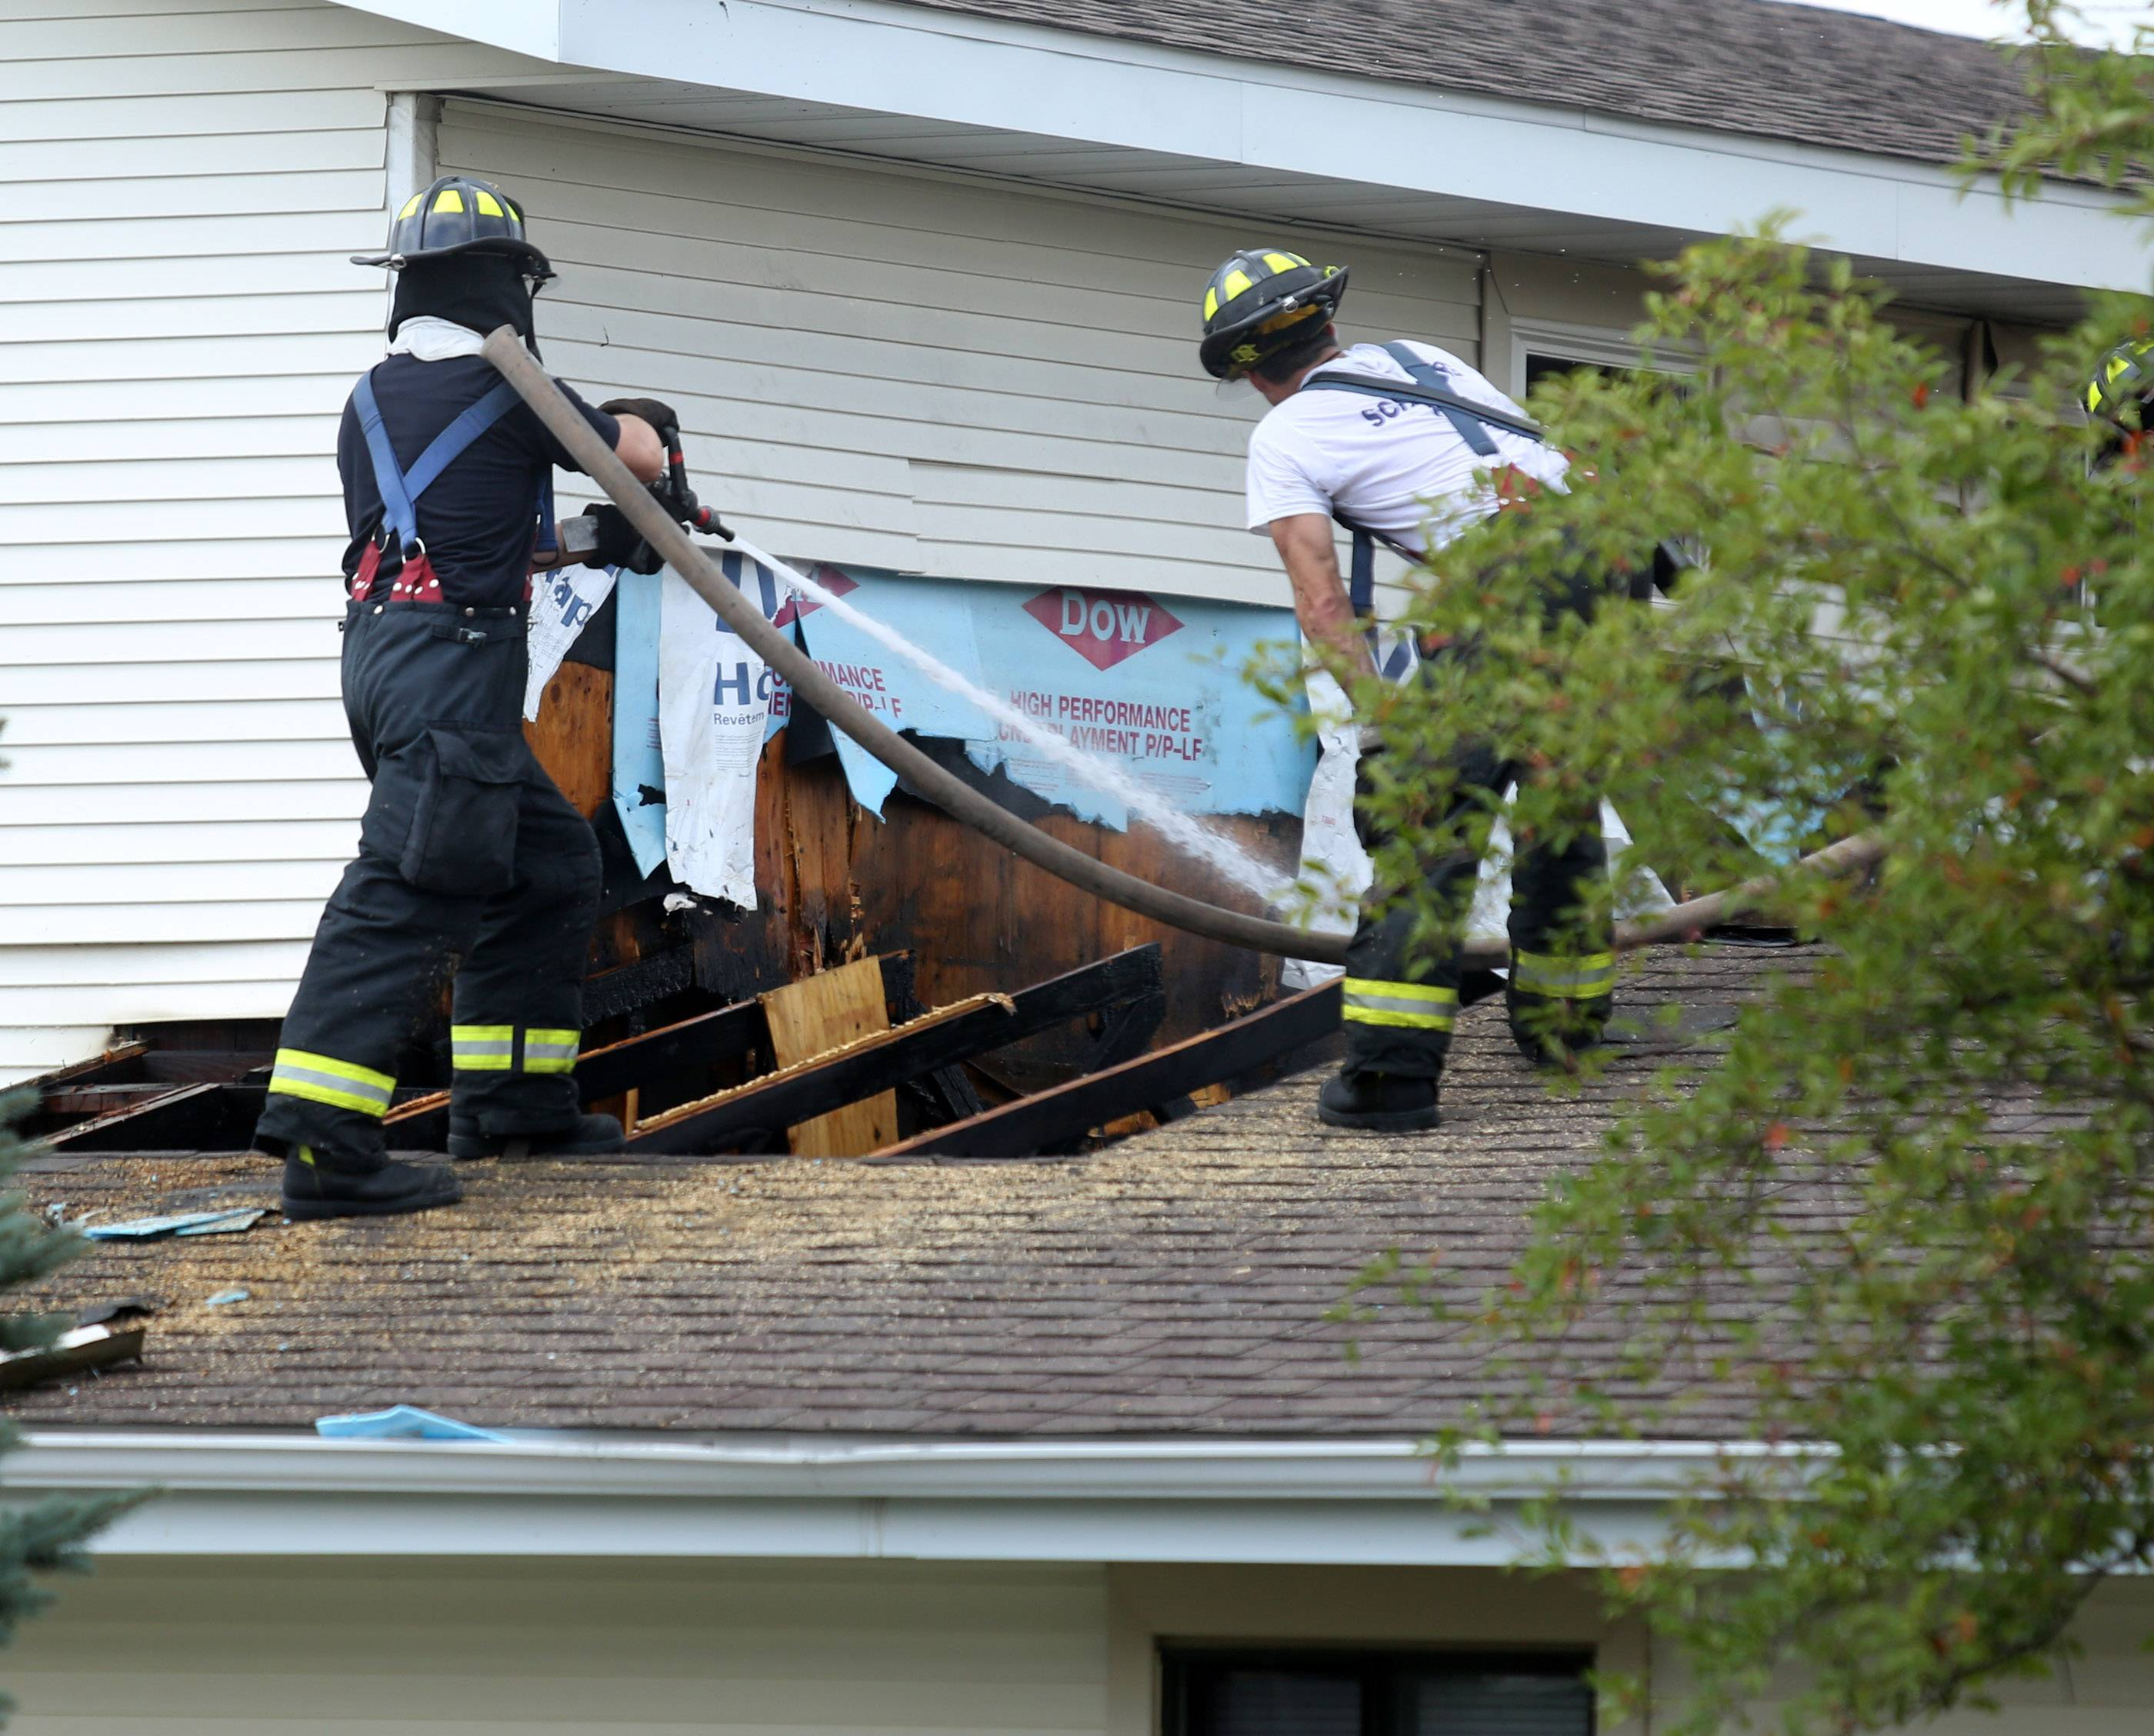 Schaumburg firefighters extinguish a house fire on the 900 block of Walpole Lane on Wednesday in Schaumburg.